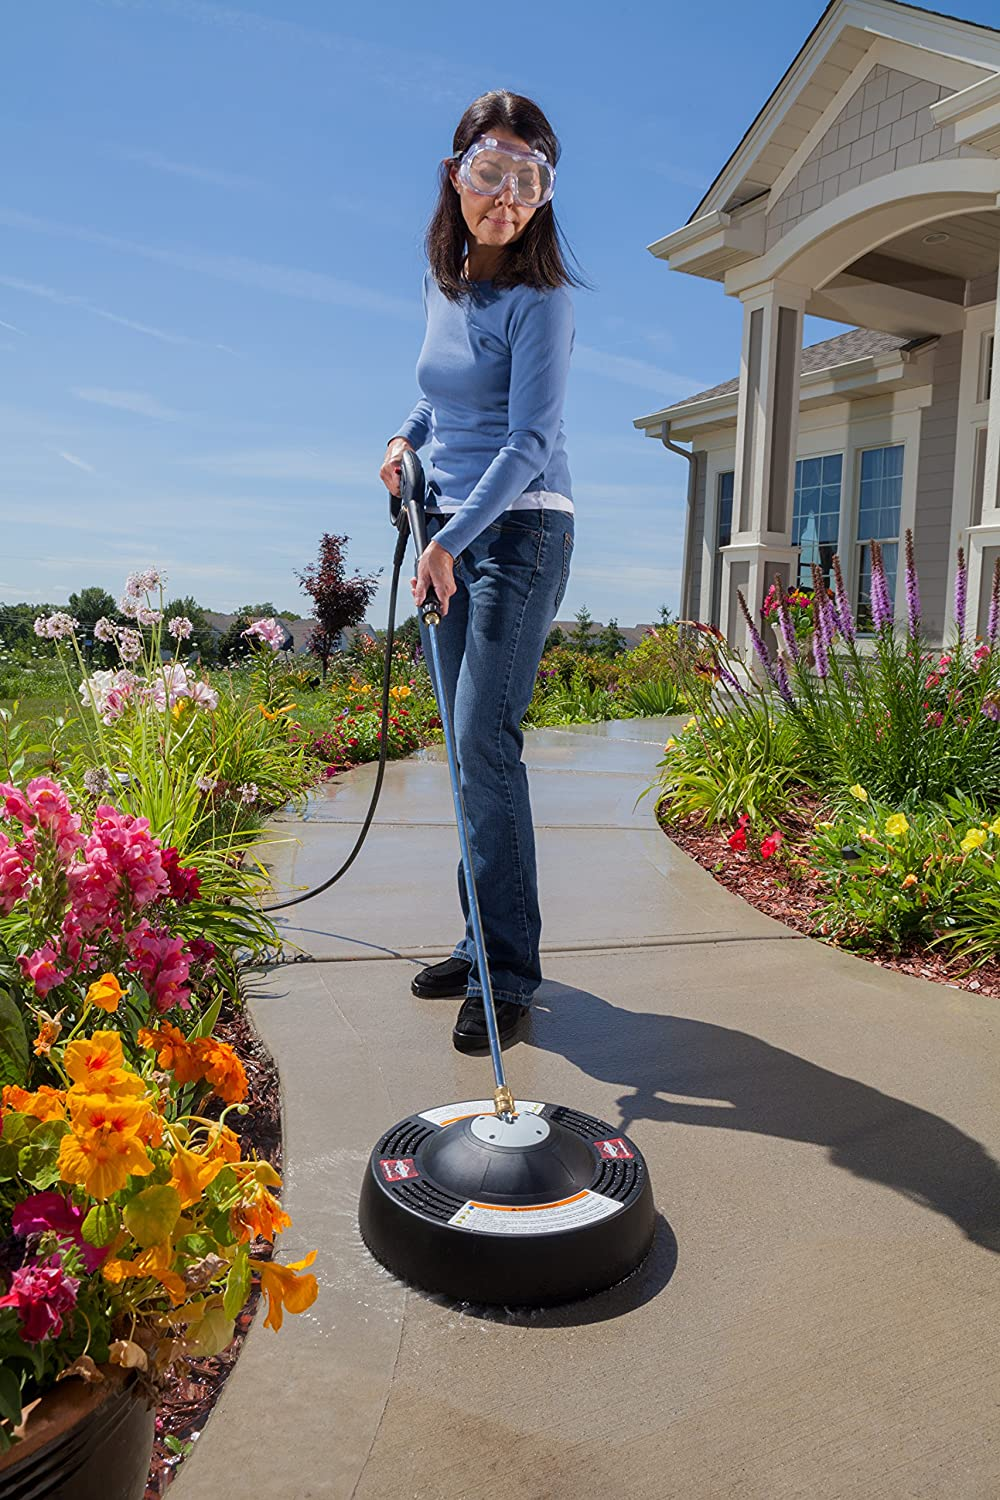 Pressmop Multi Surface Pressure Washer attachment - Shoppersy.com